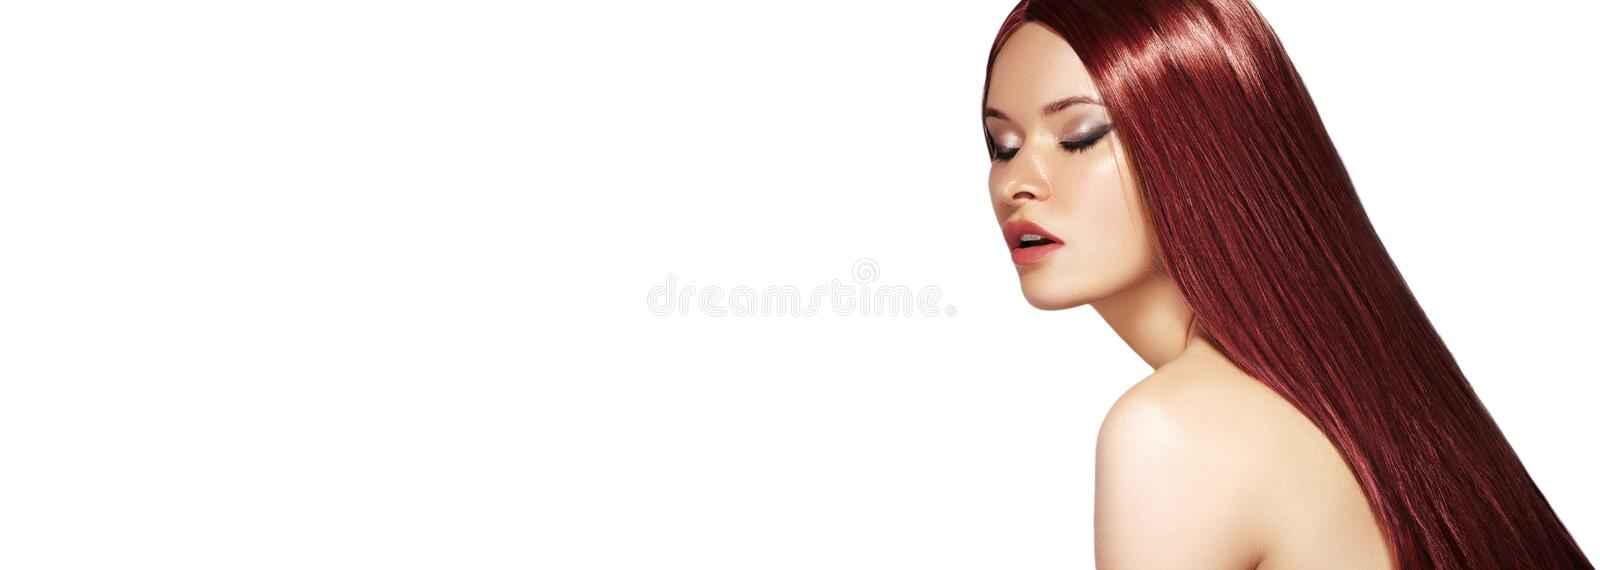 Long Straight Brown Hair. Fashion Model with Smooth red Hairstyle. Beauty with Makeup, keratin treatment. Copyspace stock images